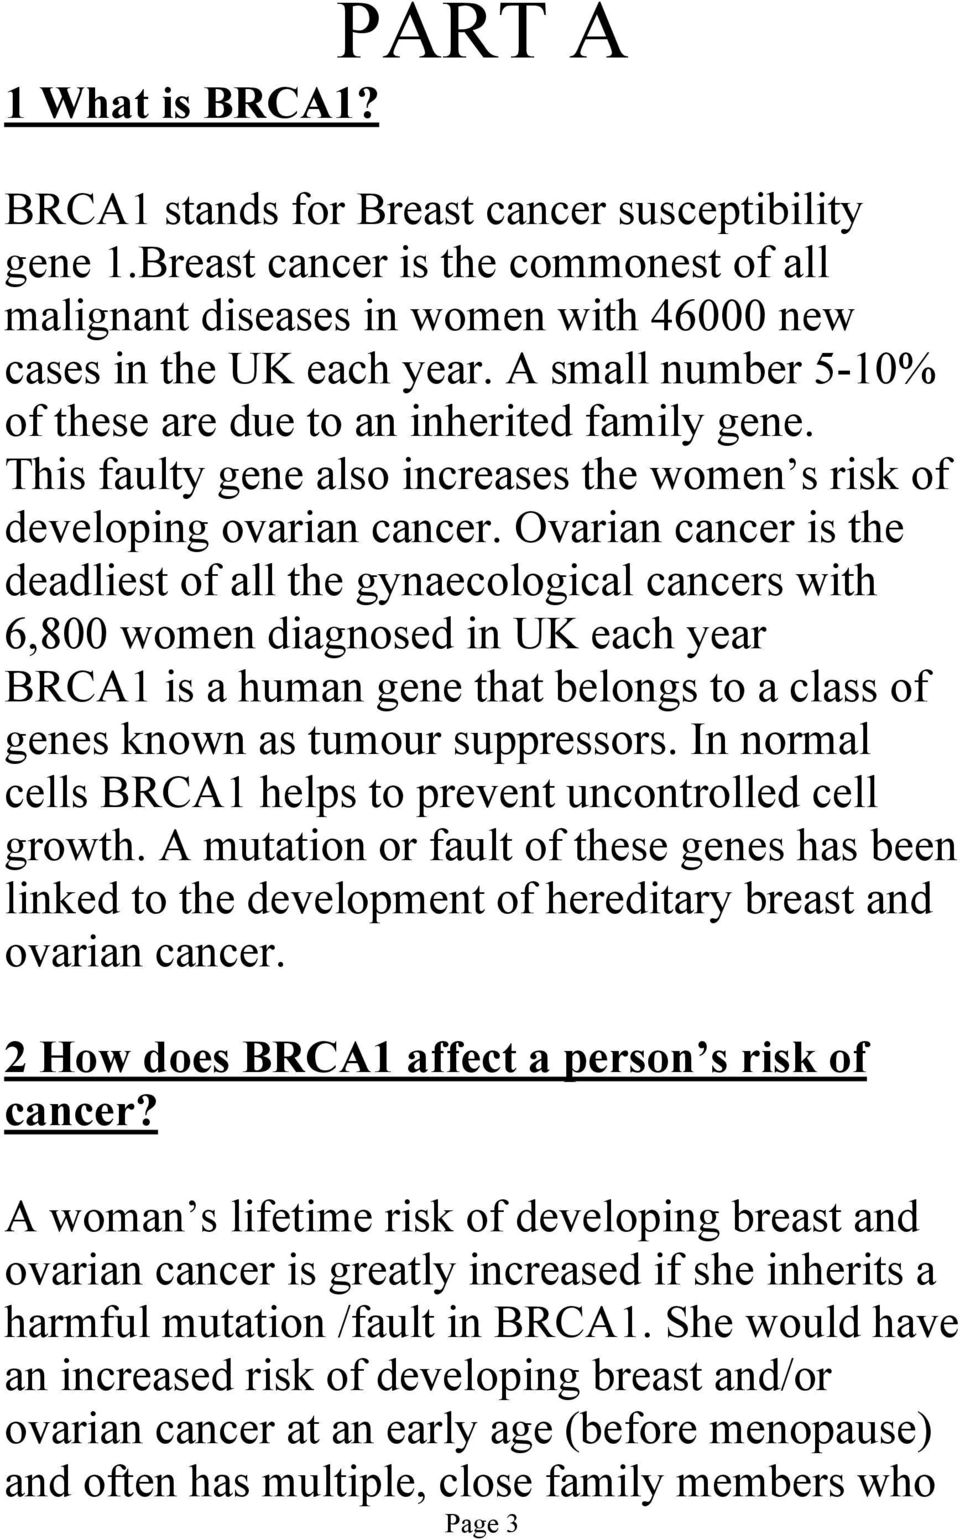 Ovarian cancer is the deadliest of all the gynaecological cancers with 6,800 women diagnosed in UK each year BRCA1 is a human gene that belongs to a class of genes known as tumour suppressors.